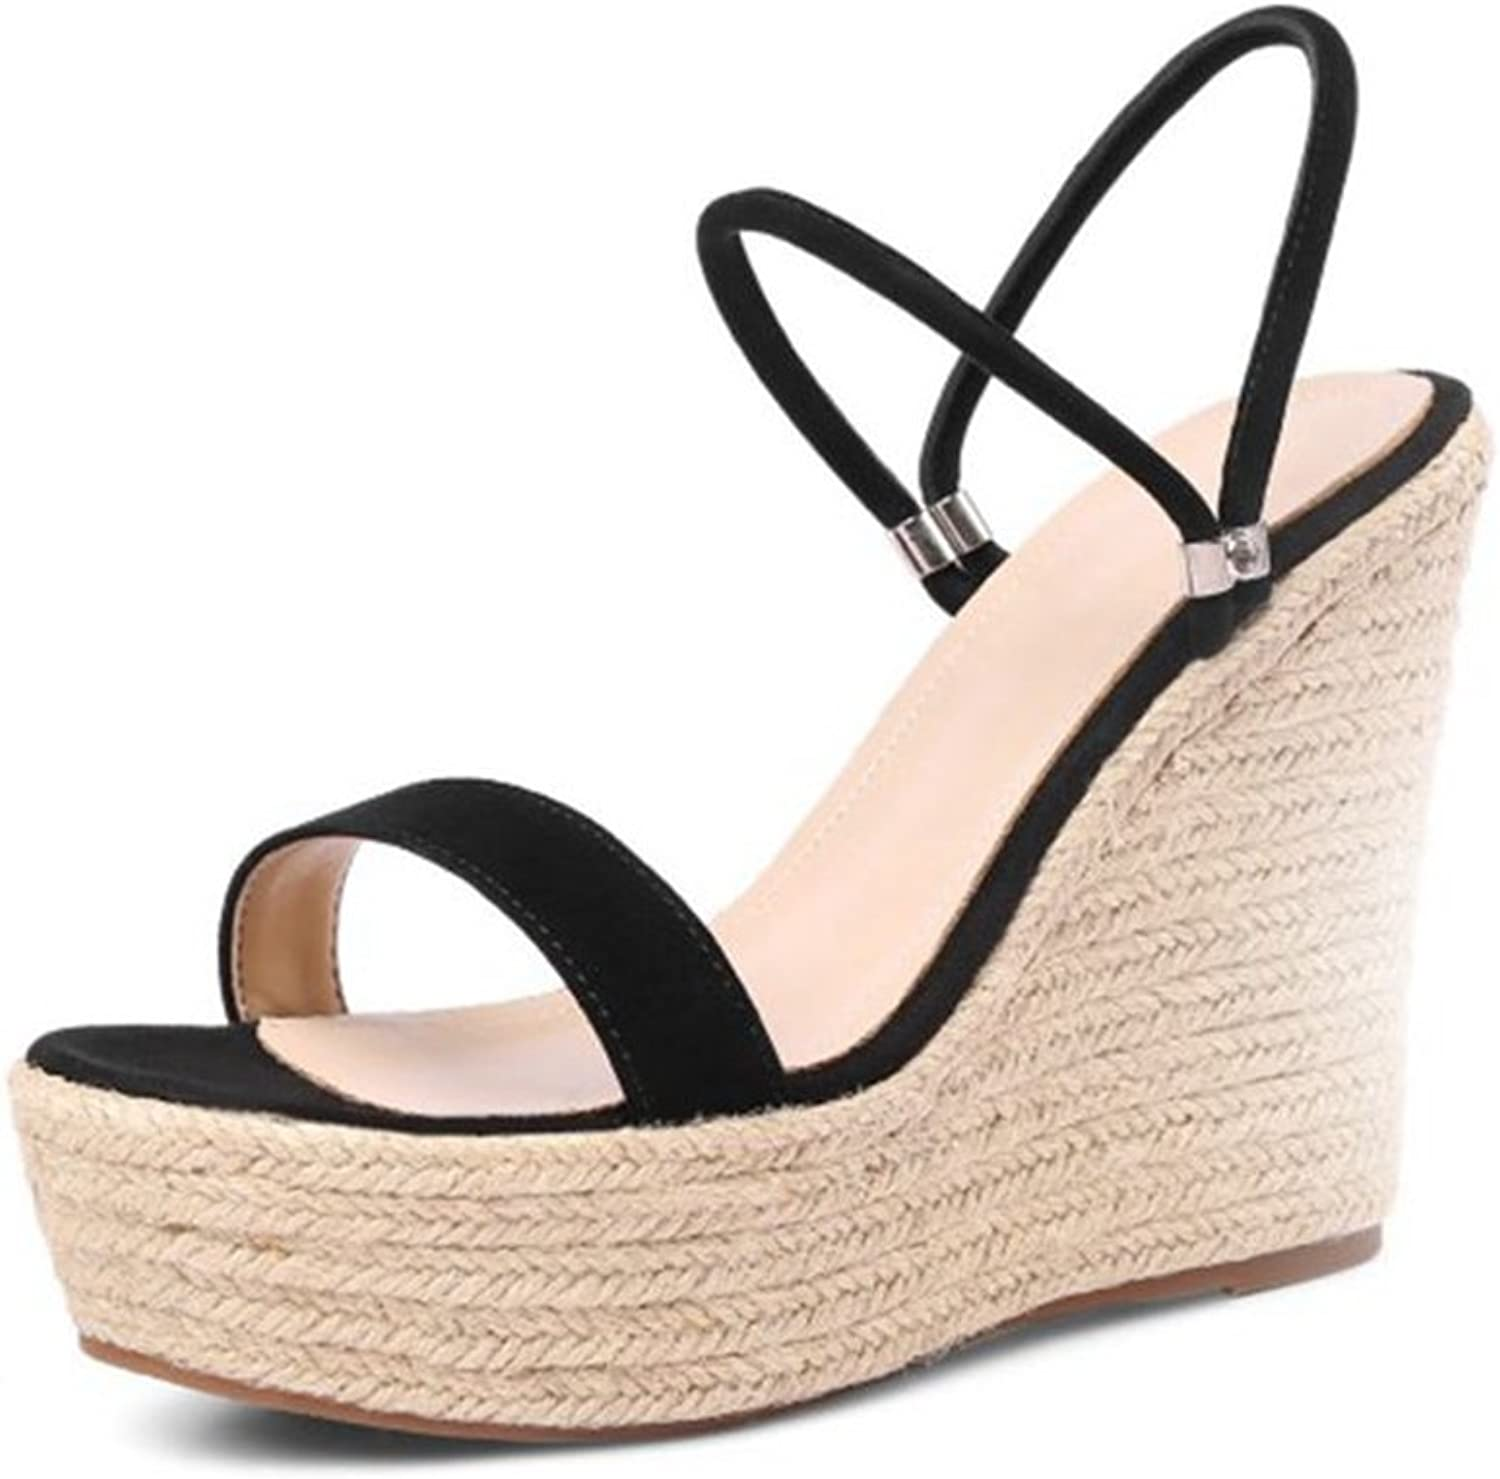 Womens Sandals High Heel Peep Toe Platform Ankle Strap Fretwork Wedges shoes